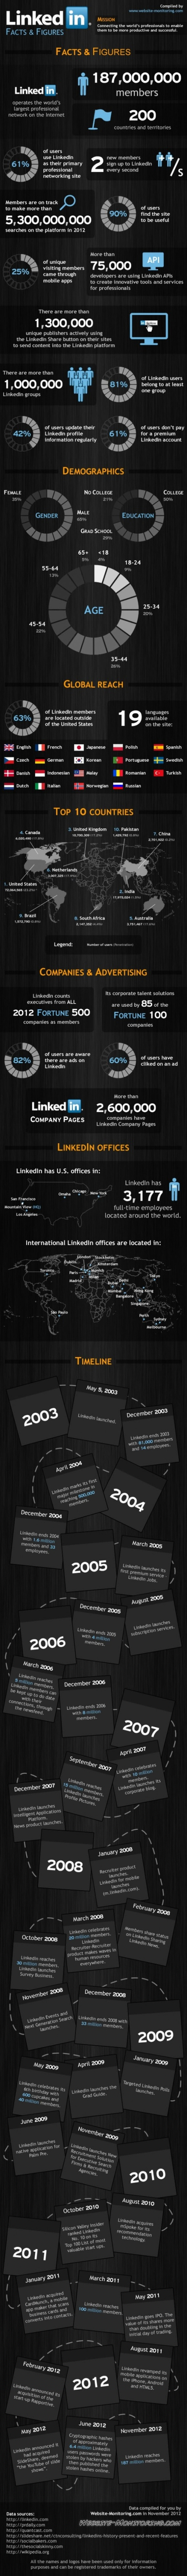 Linkedin Facts and Figues